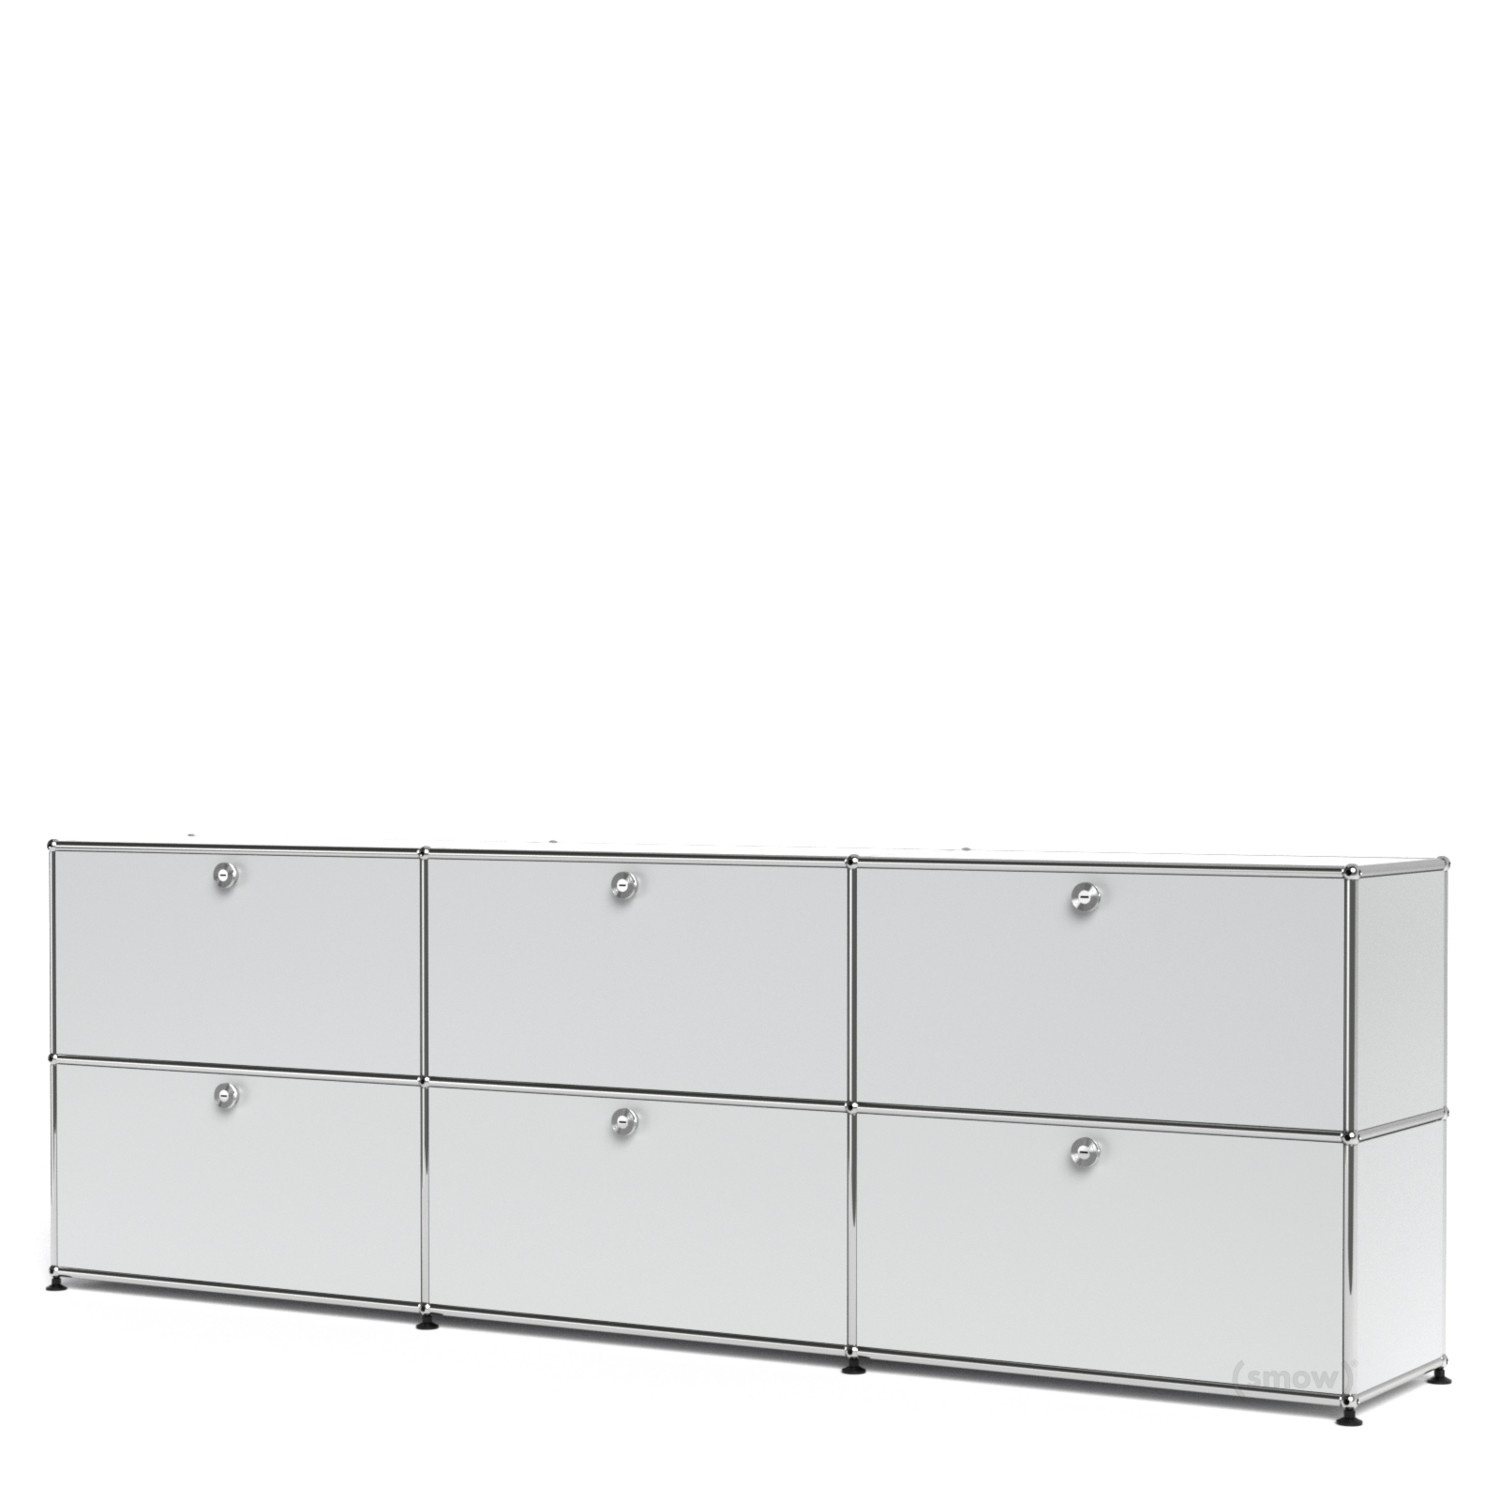 Usm haller sideboard xl customisable usm matte silver for Usm haller sideboard weiay